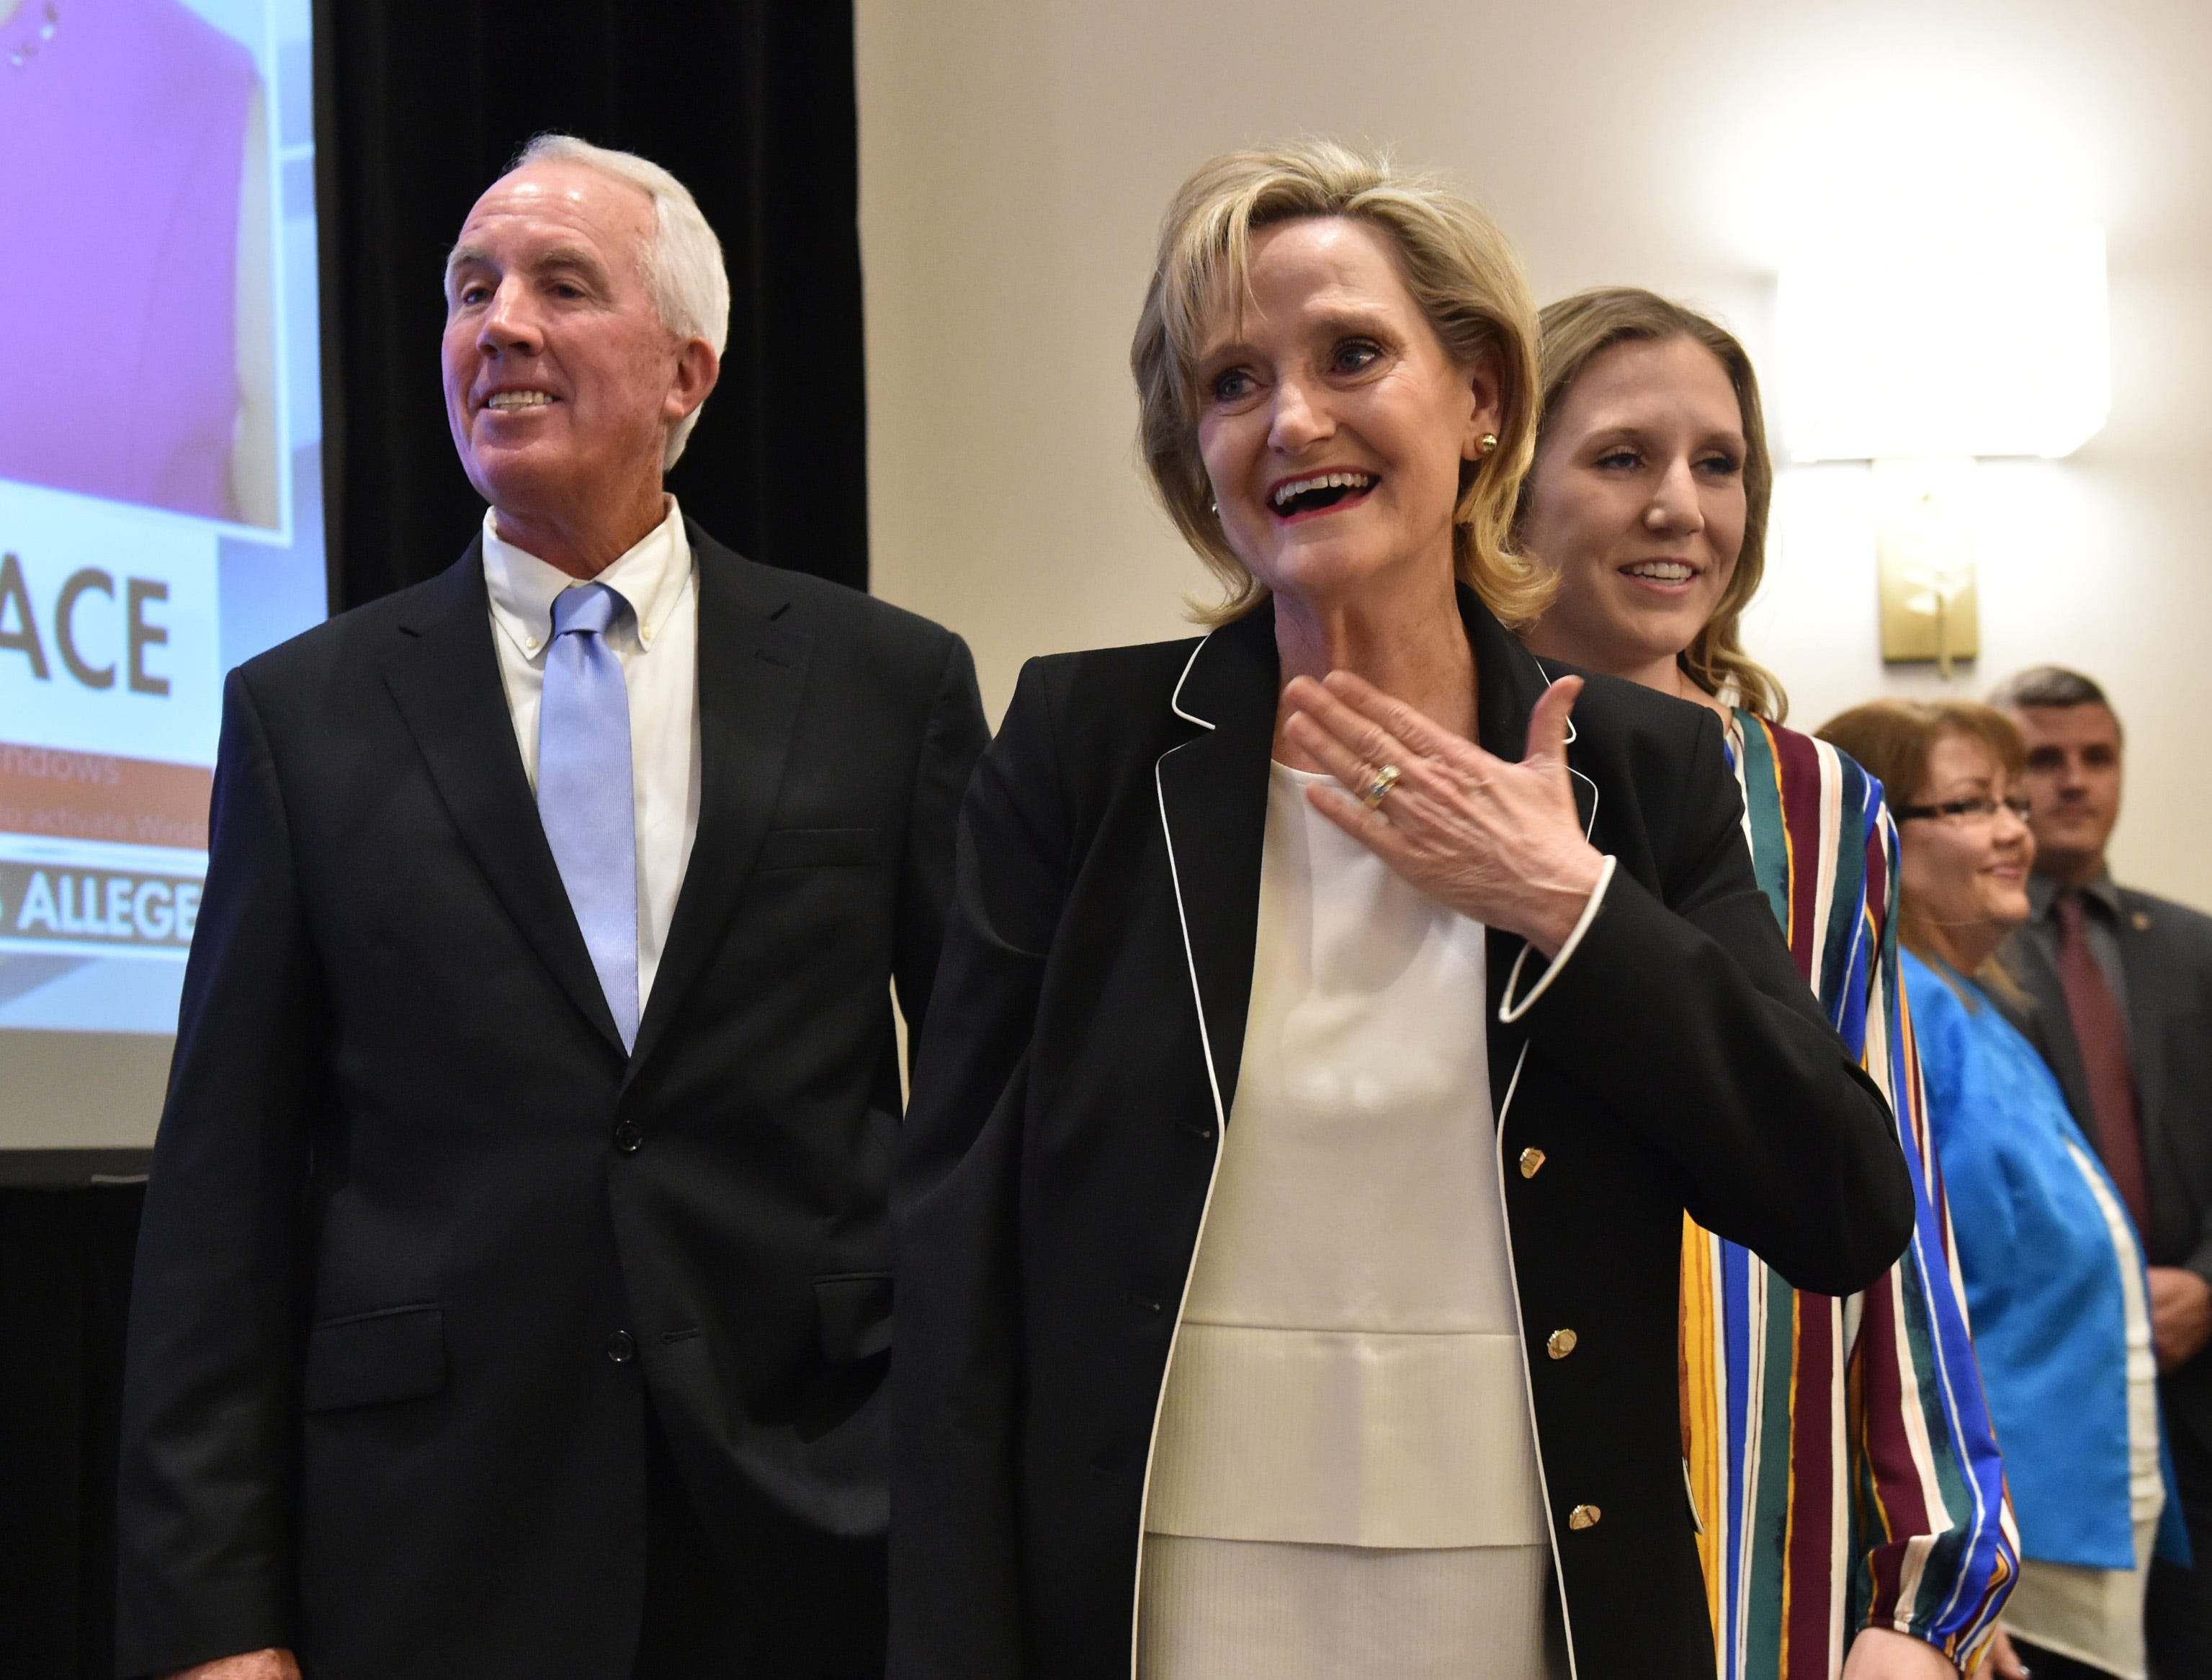 U.S. Sen Cindy Hyde-Smith enters the room of her election watch party at the Westin hotel in Jackson following the announcement of her win against democratic candidate Mike Espy for U.S. senate. Jackson, Miss. Tuesday, Nov. 27, 2018.